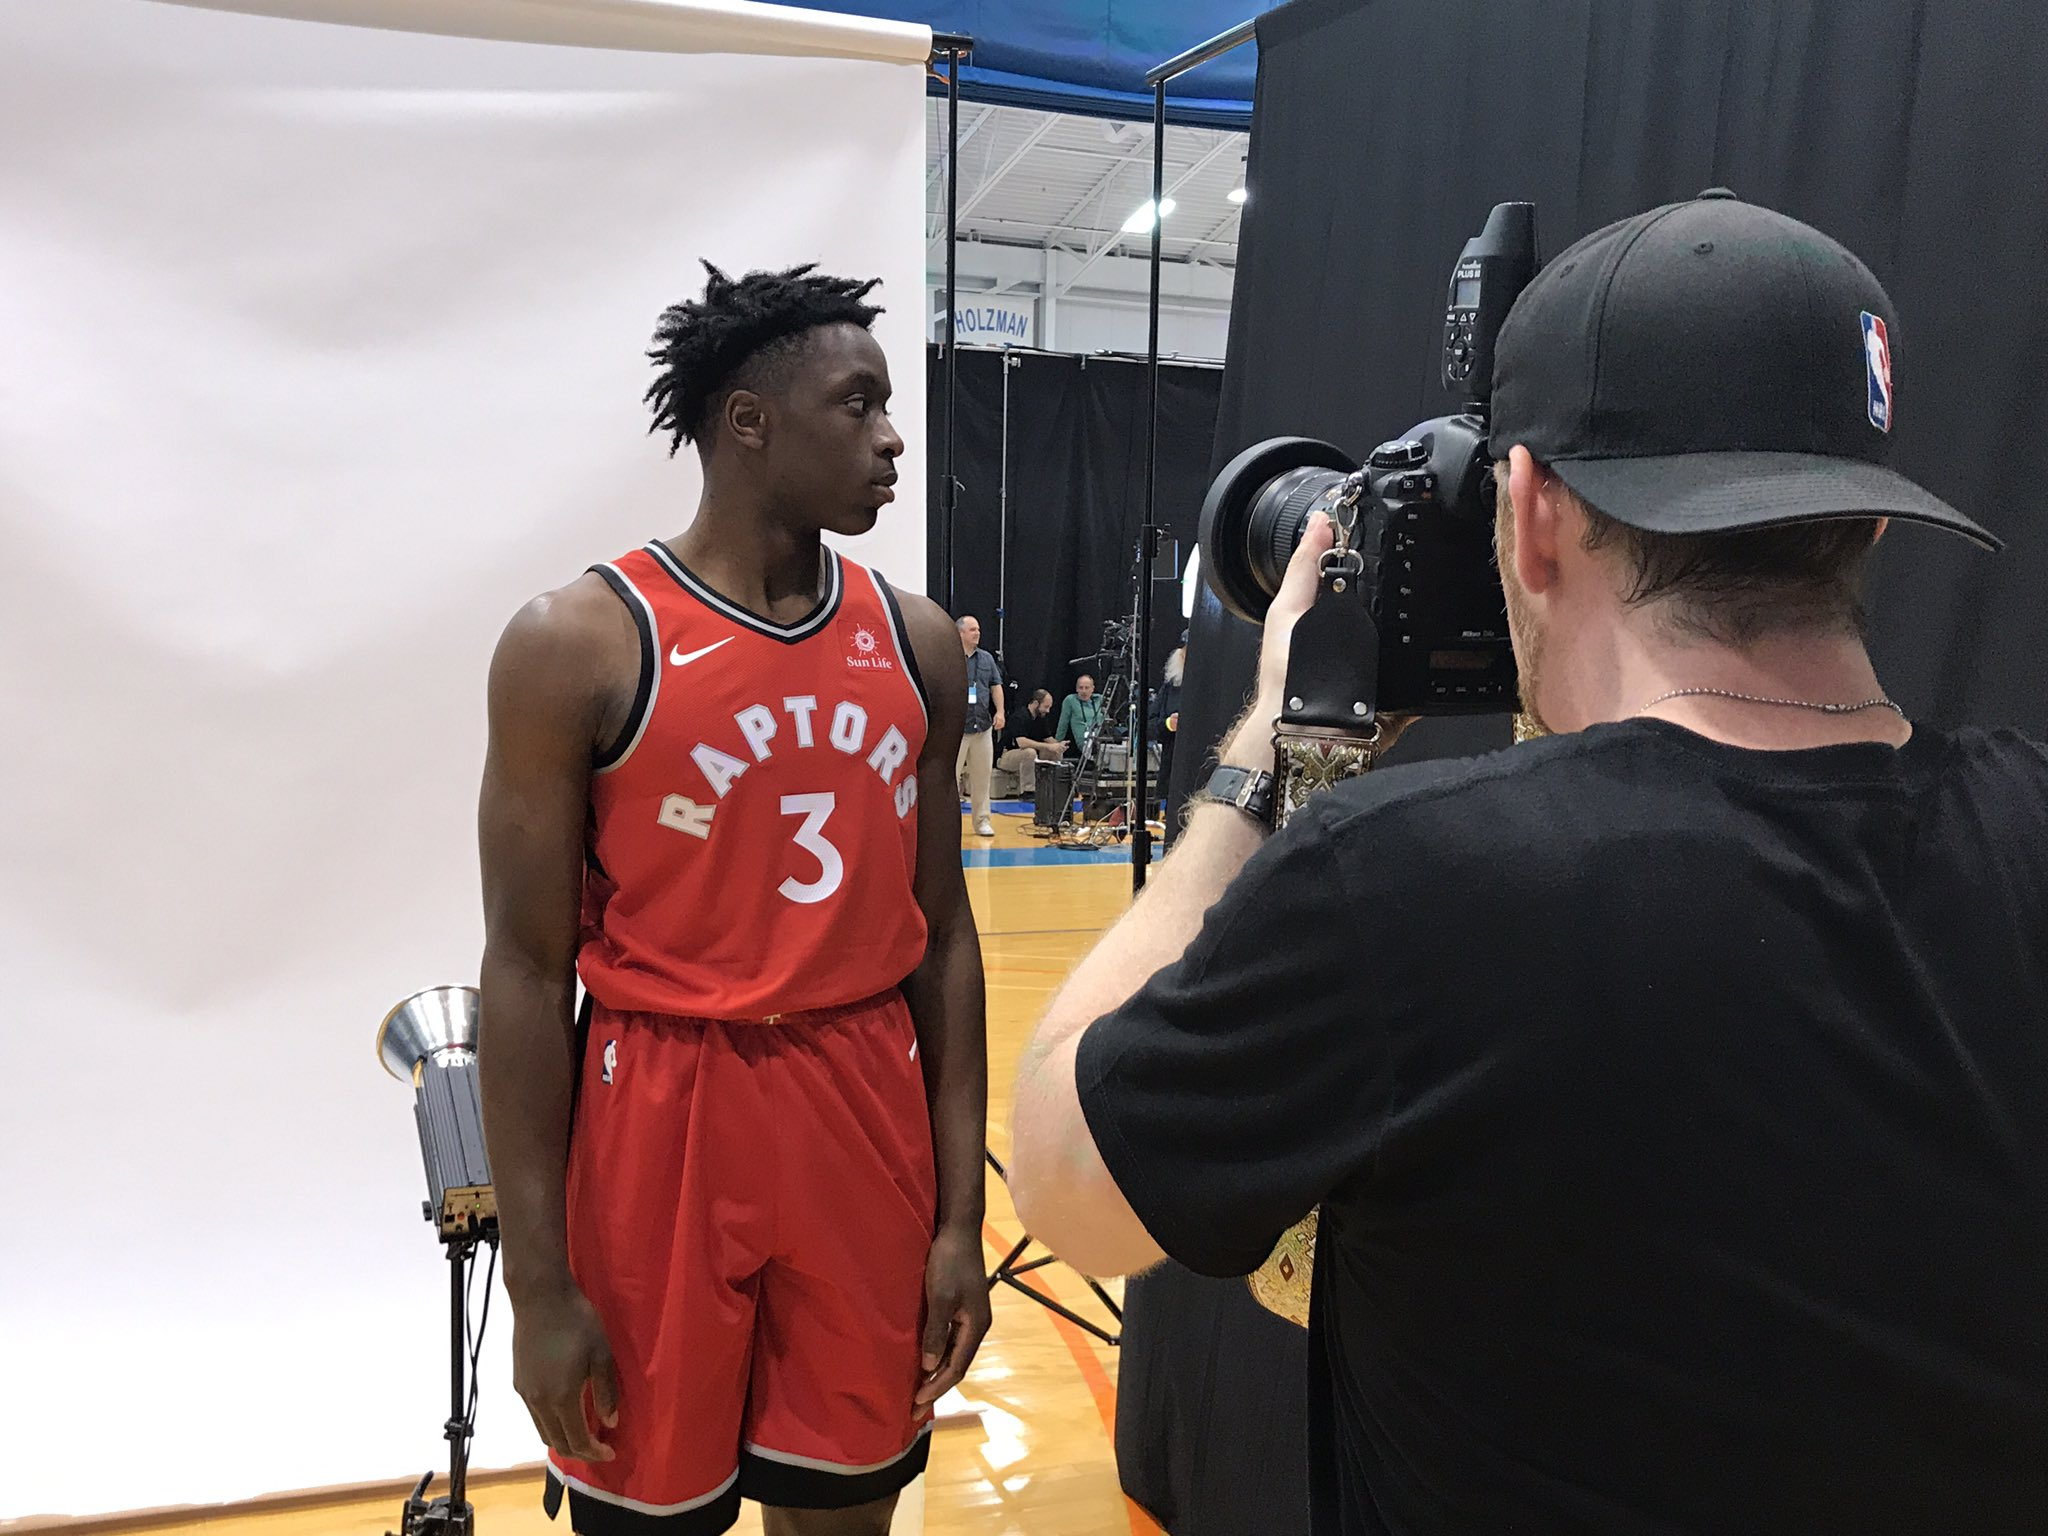 The @Raptors' @OAnunoby gets portraits shot by @babsphoto at #PaniniNBARookie shoot! https://t.co/vzOWPh5eXa